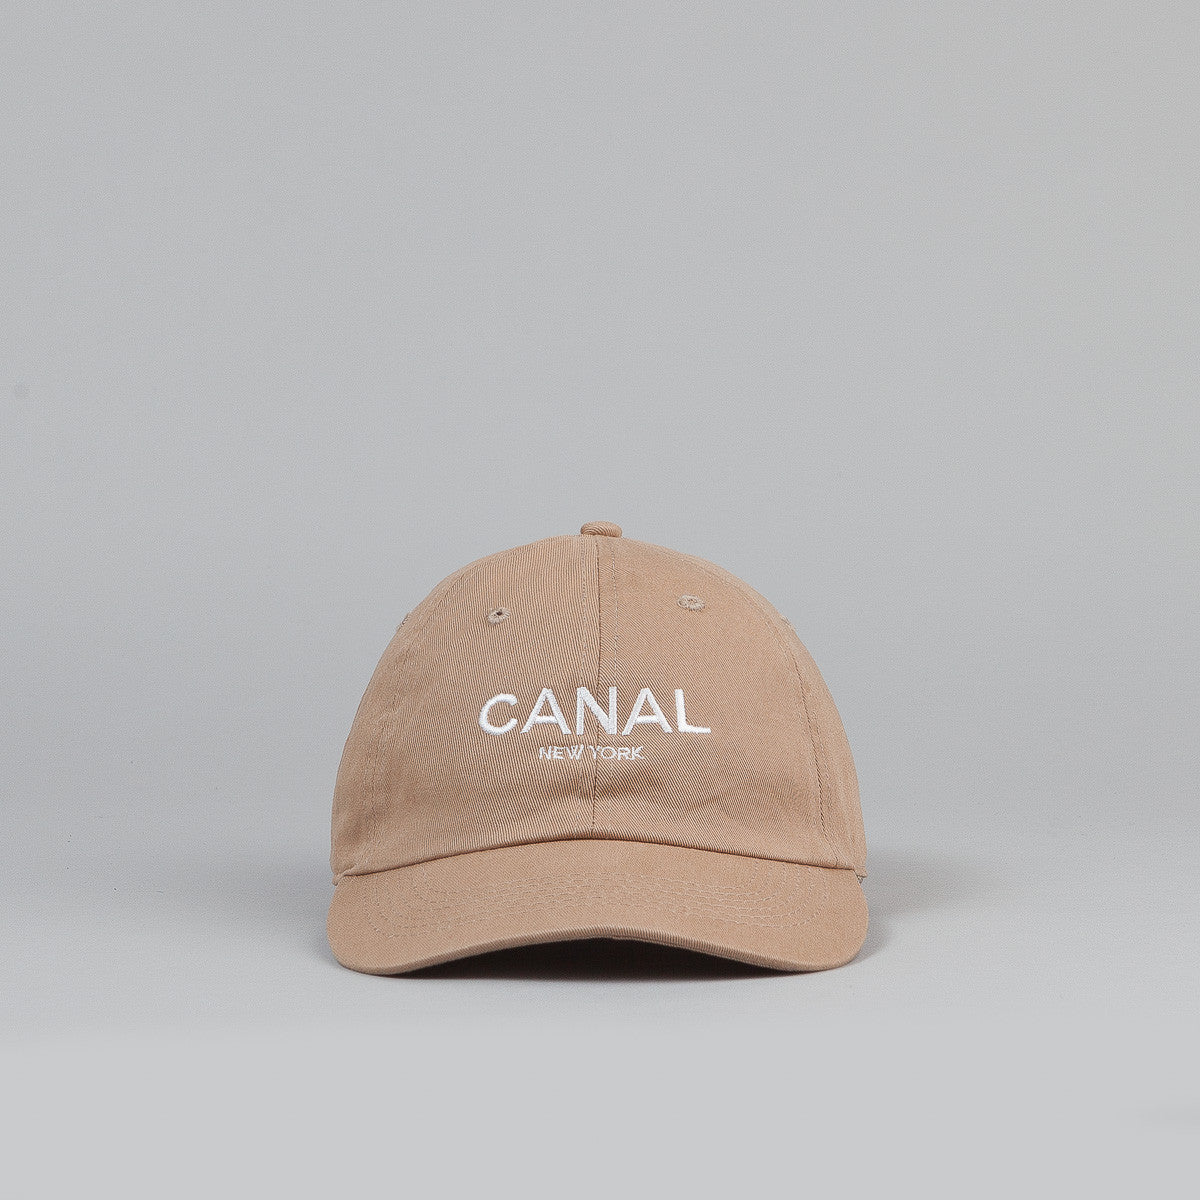 Canal New York Adult Headwear 6 Panel Cap - Khaki